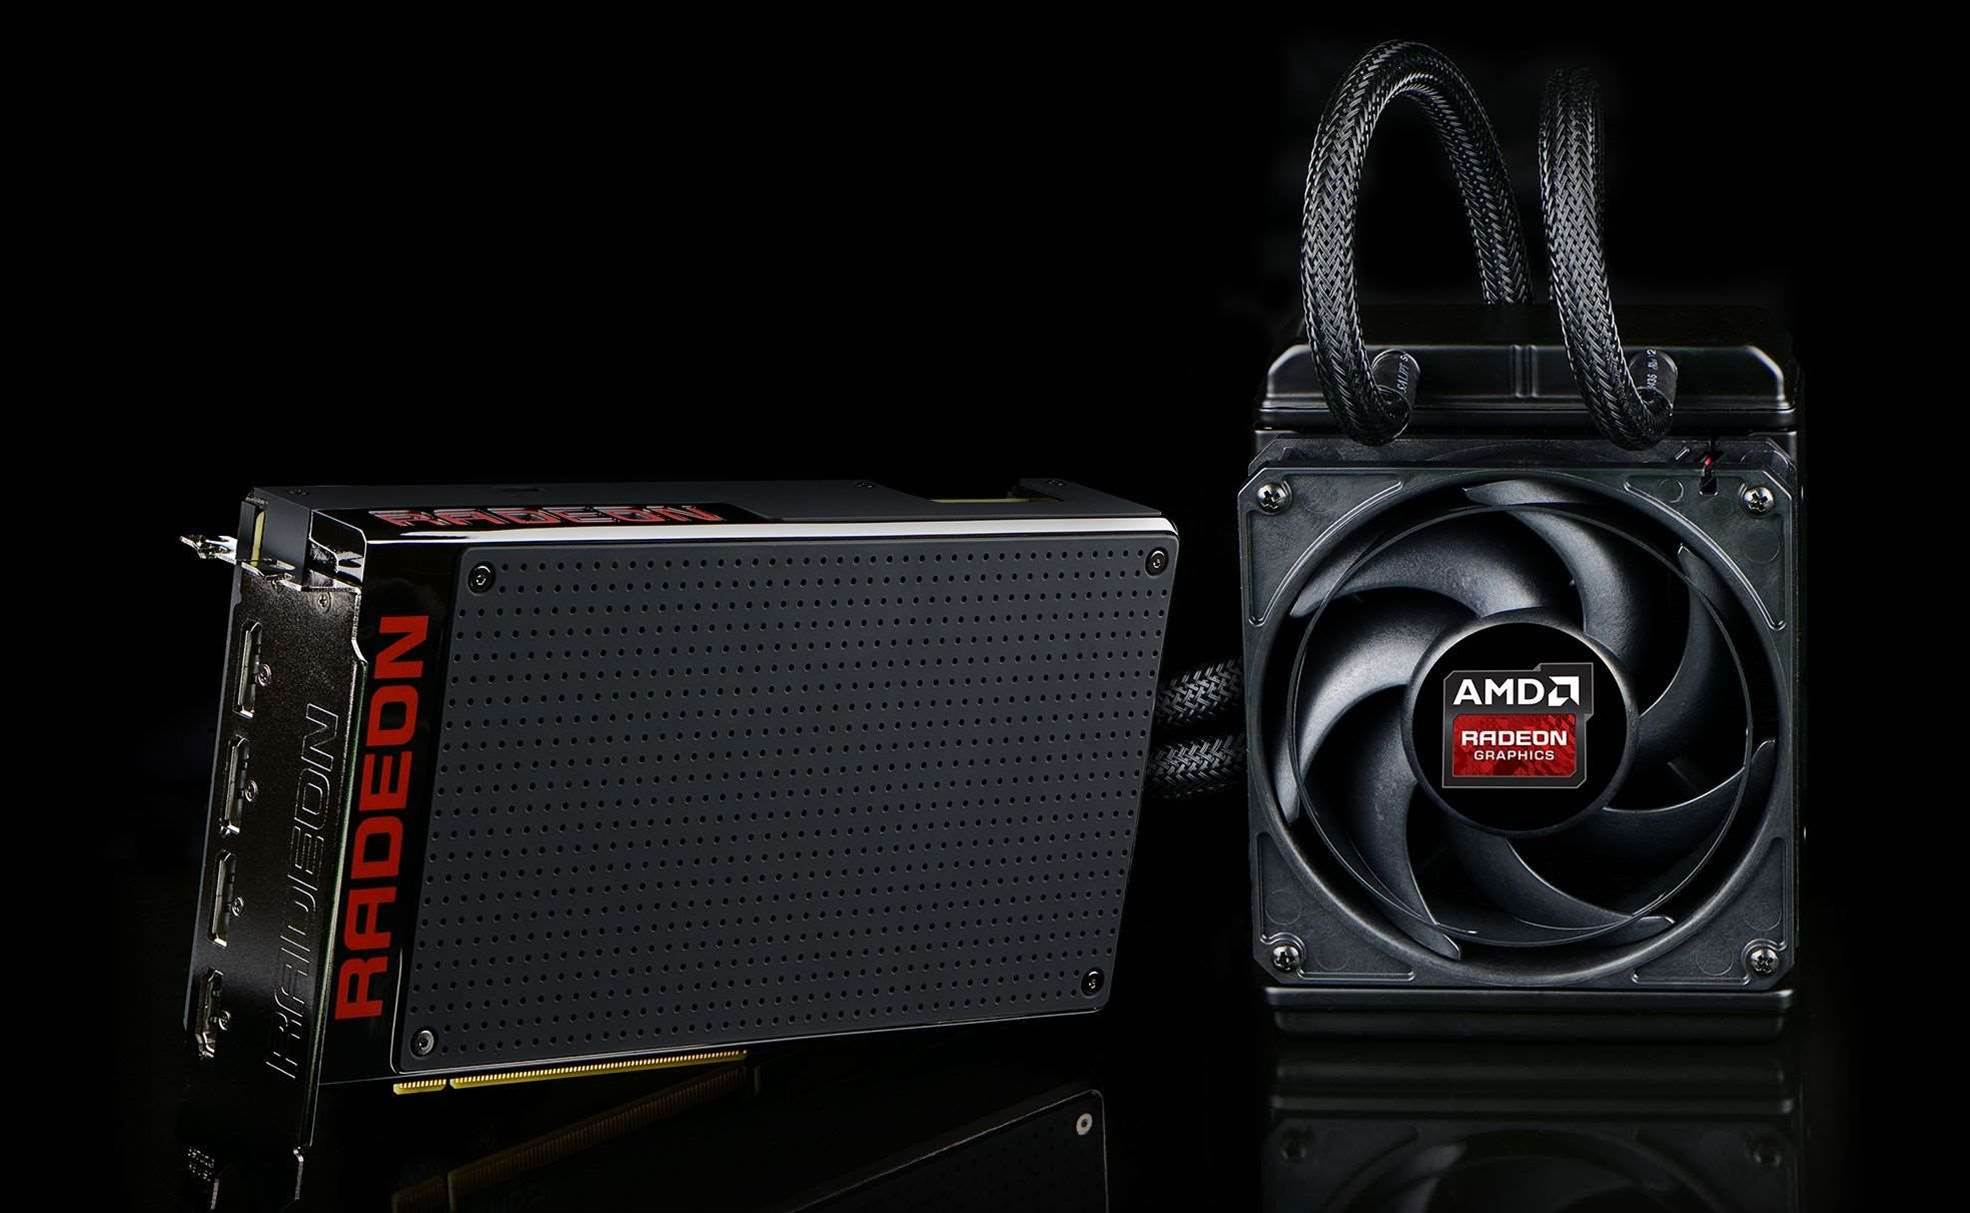 Review: AMD Radeon R9 Fury X